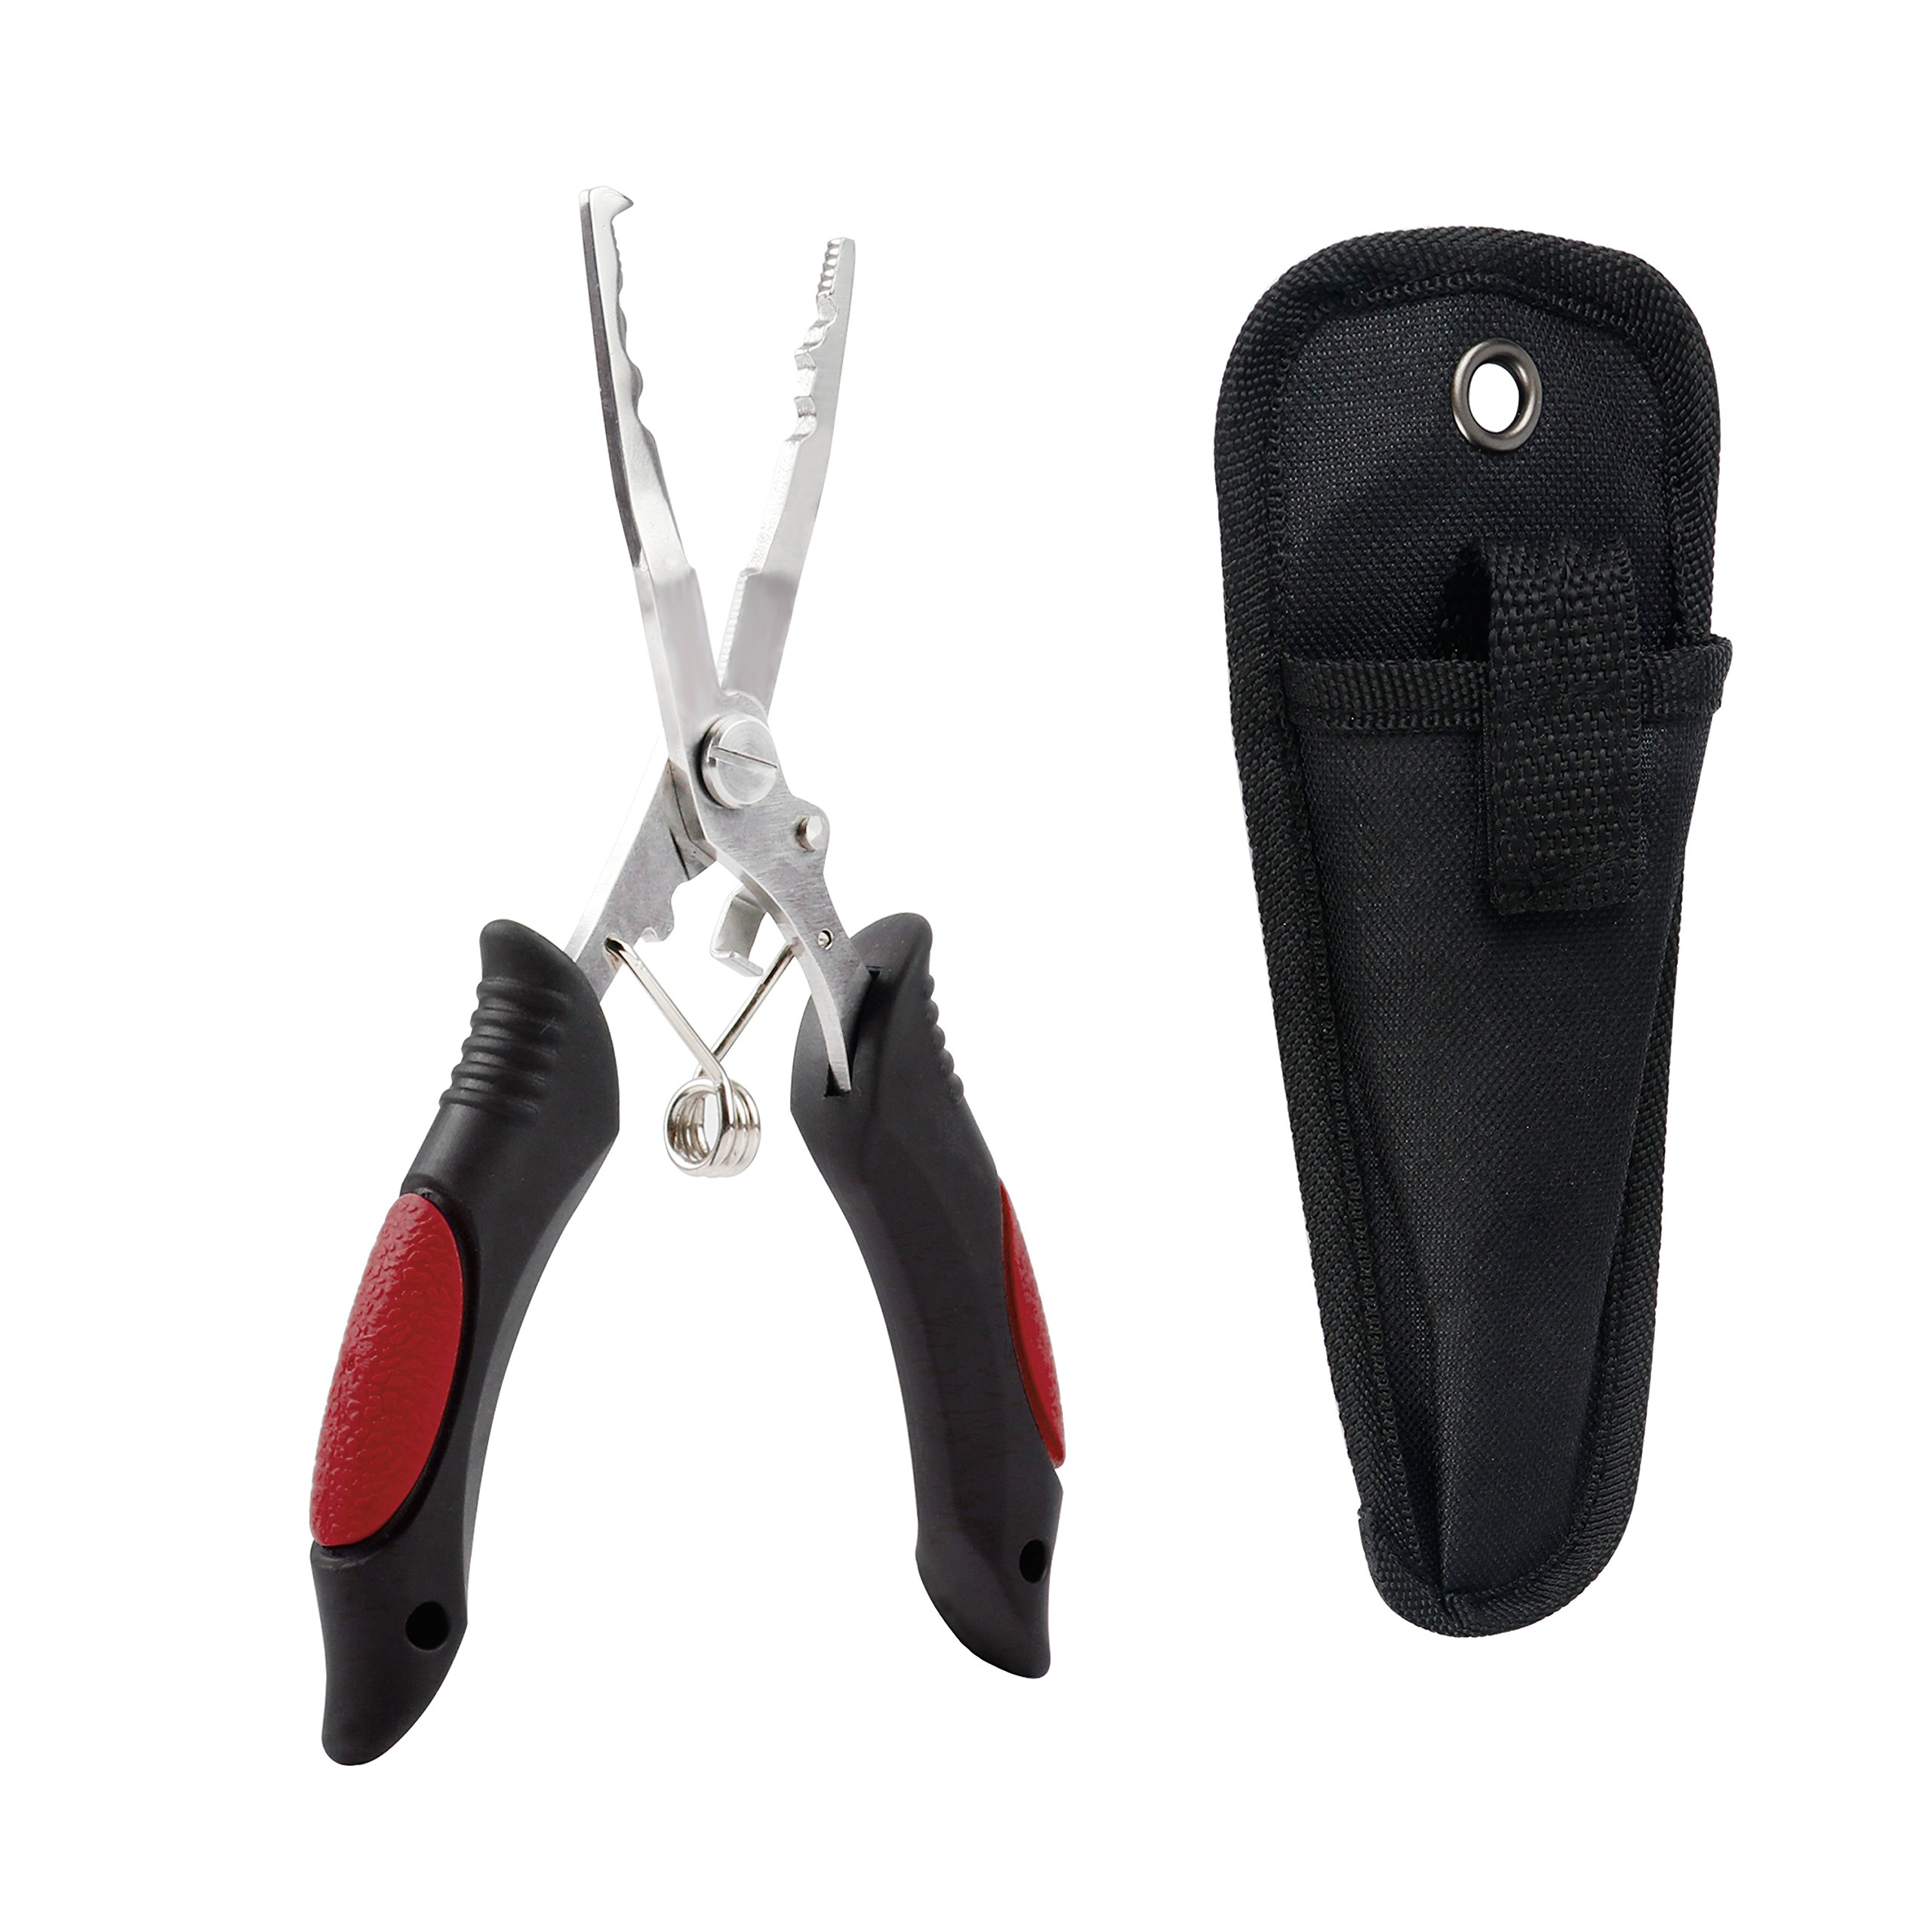 RUNCL Fishing Pliers Stainless Steel L1, Needle Nose Pliers Braid Cutter Hook Remover Split Ring Pliers Crimper Fish Gripper with Coiled Sheath for Freshwater and Saltwater Fishing (Red & Black)